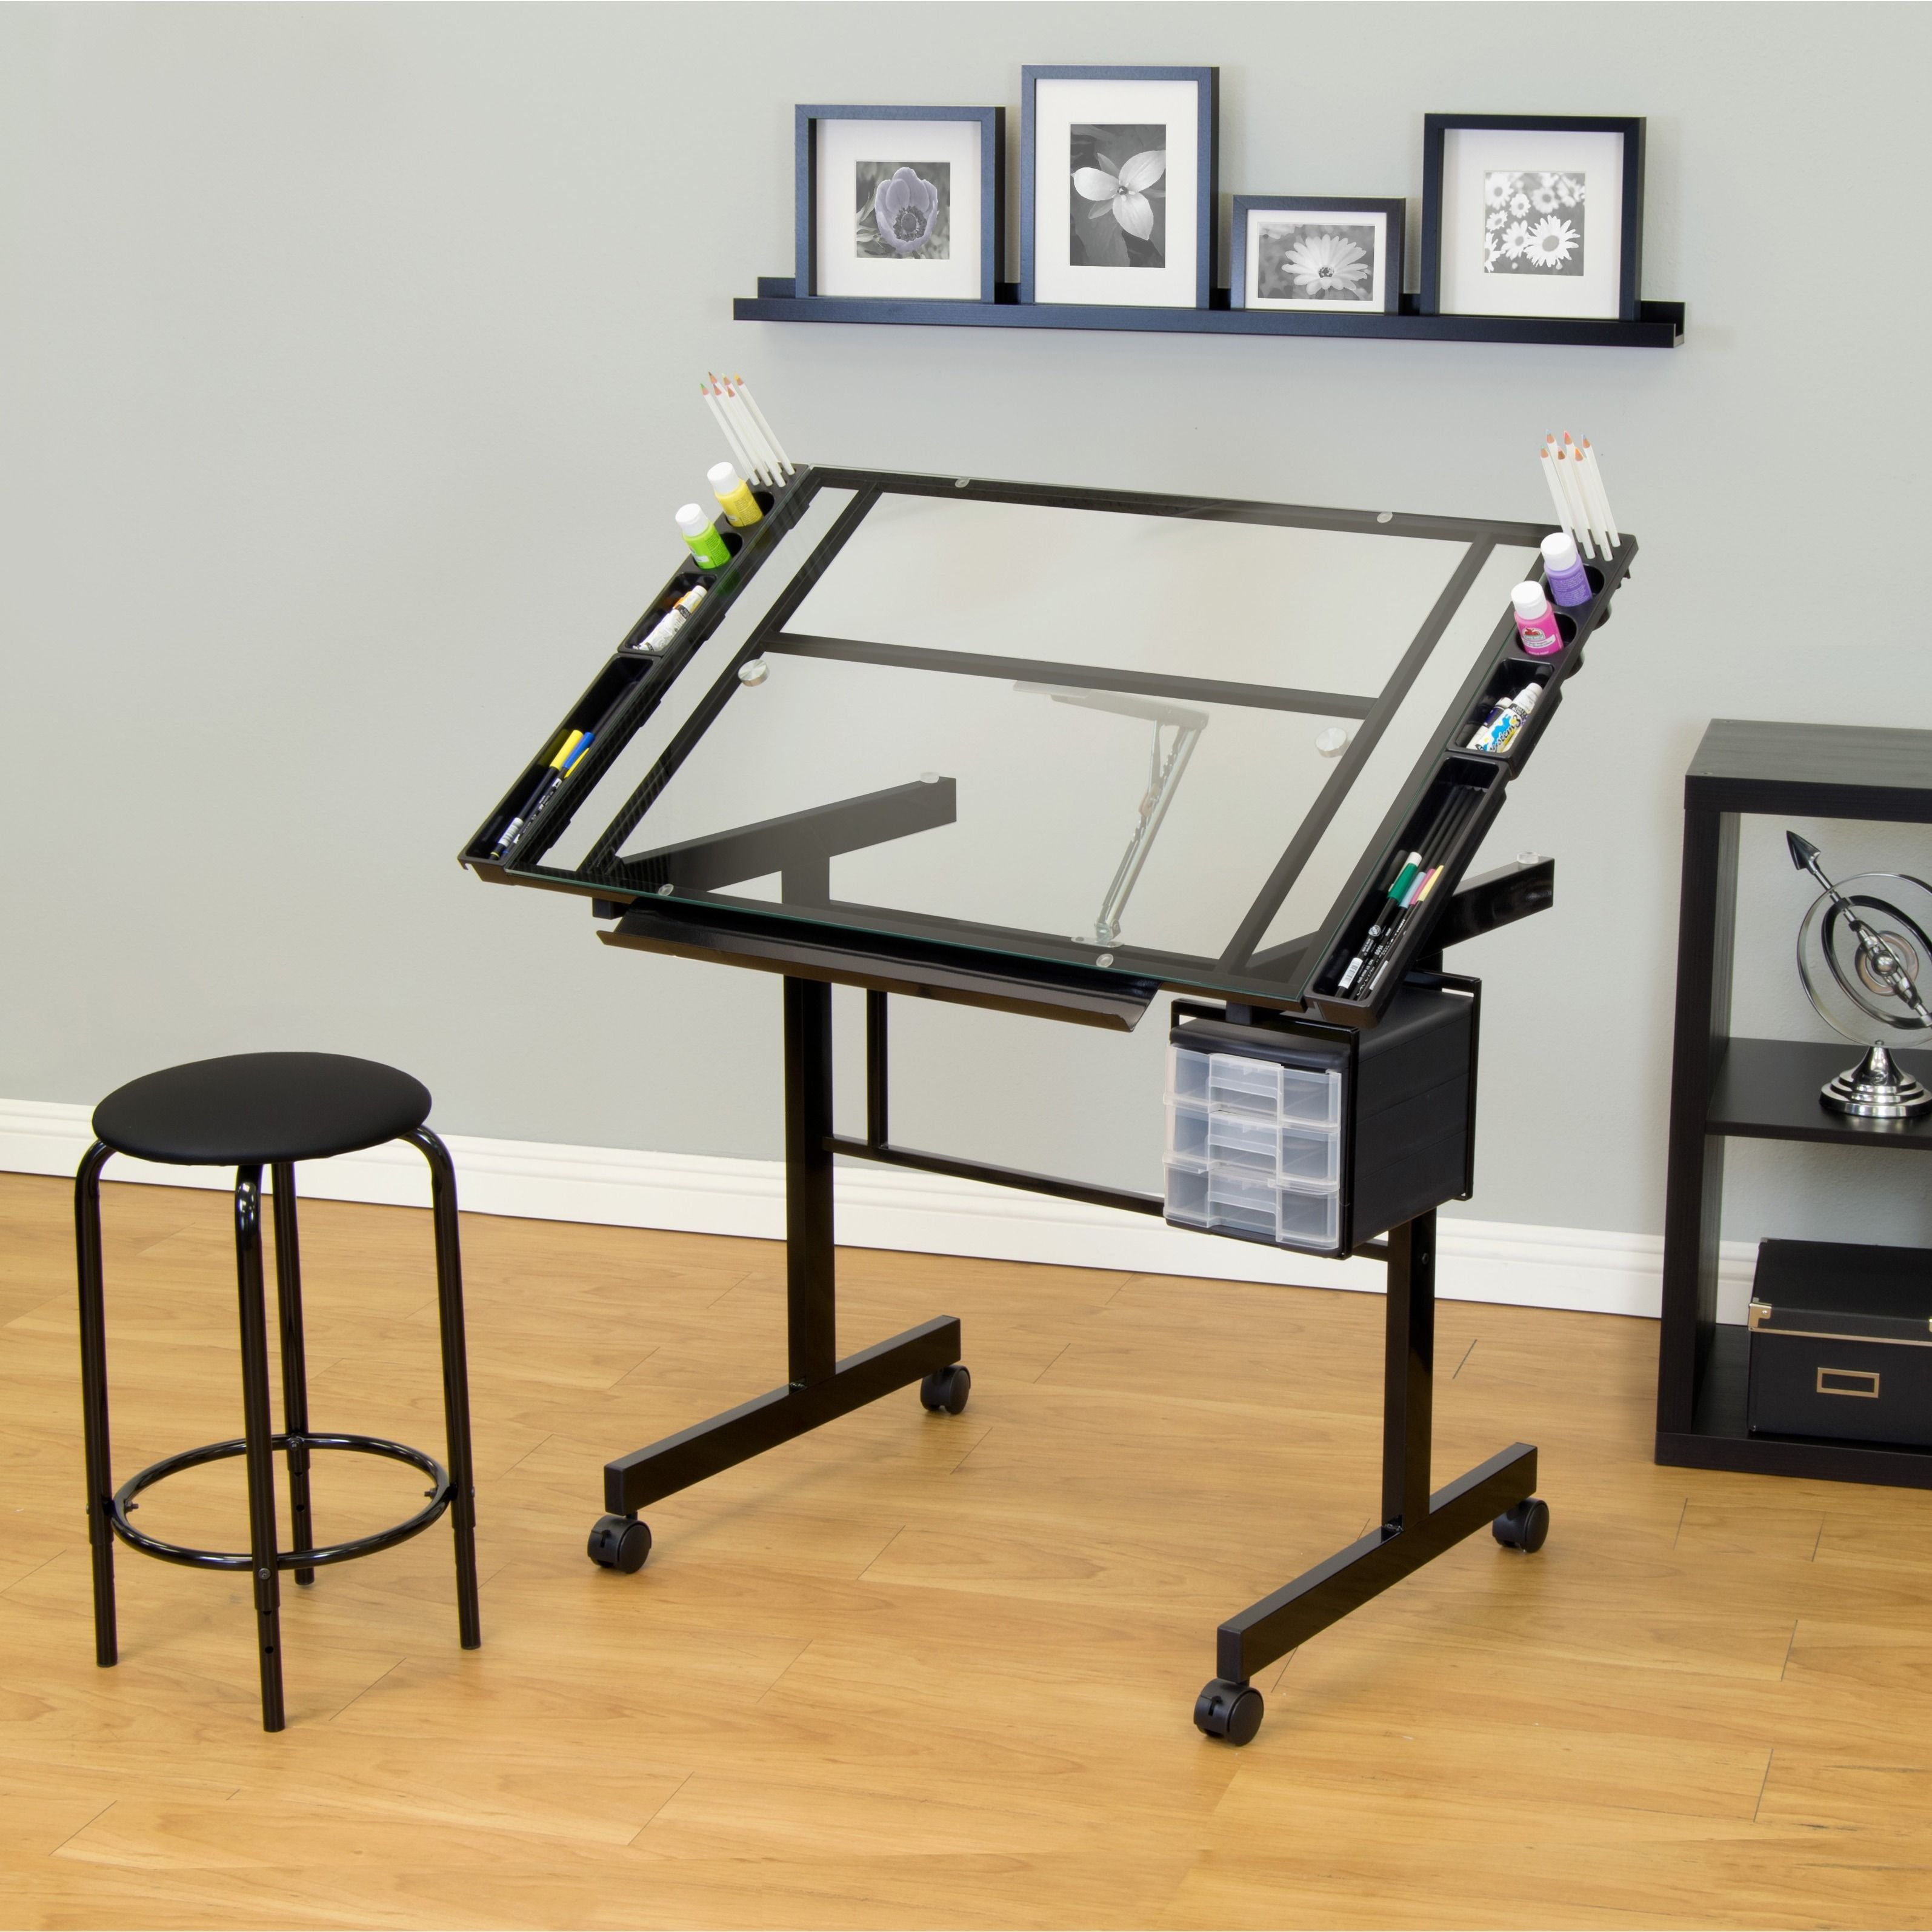 Small kitchen table and 2 chairs  Studio Designs Vision piece Clear Glass Top Drafting Table with